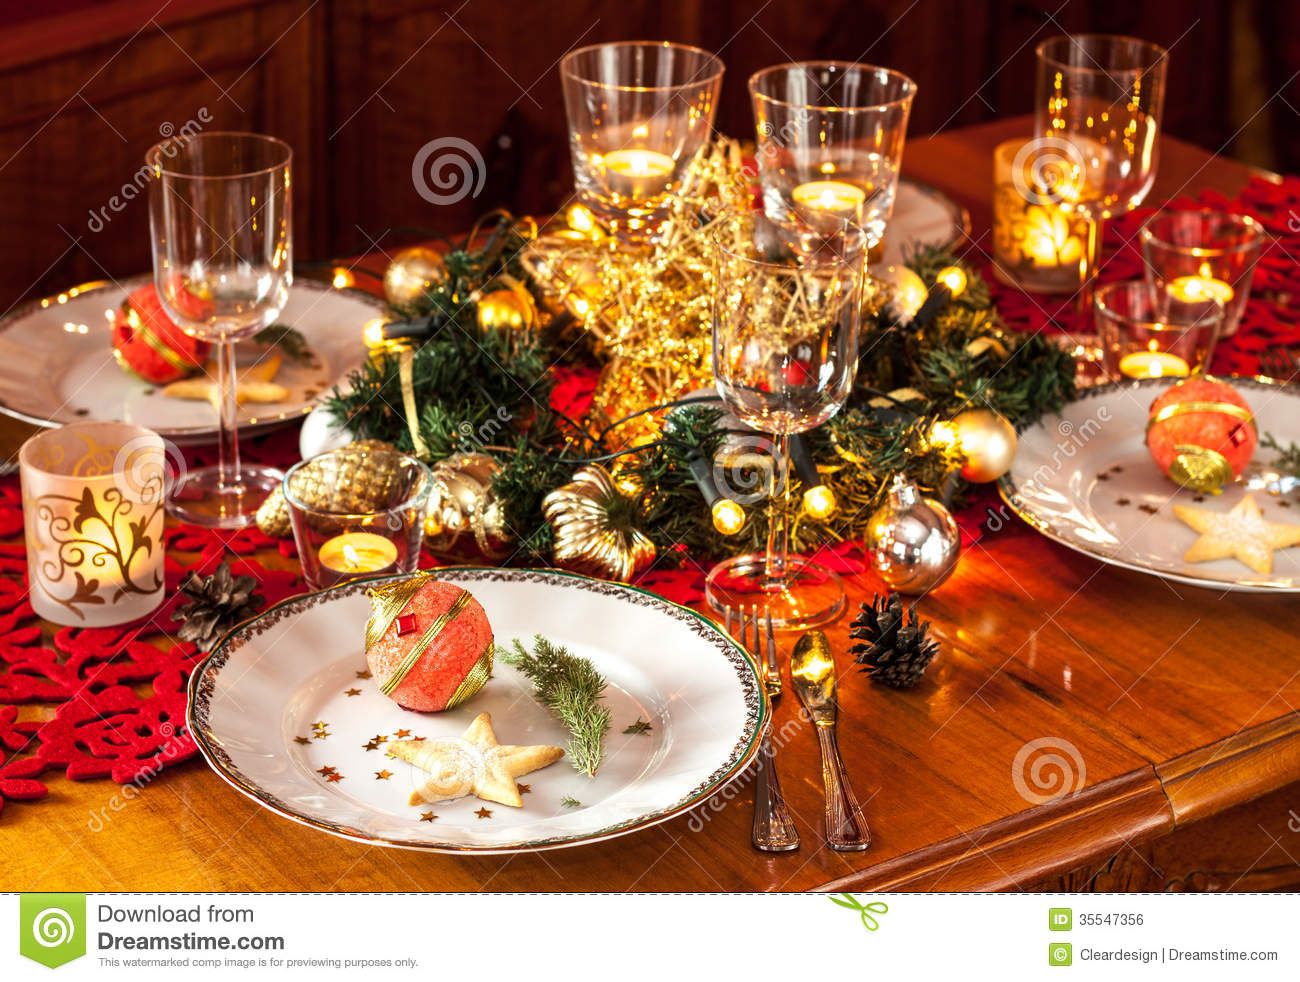 Christmas Eve Dinner Party Table Setting With Decorations